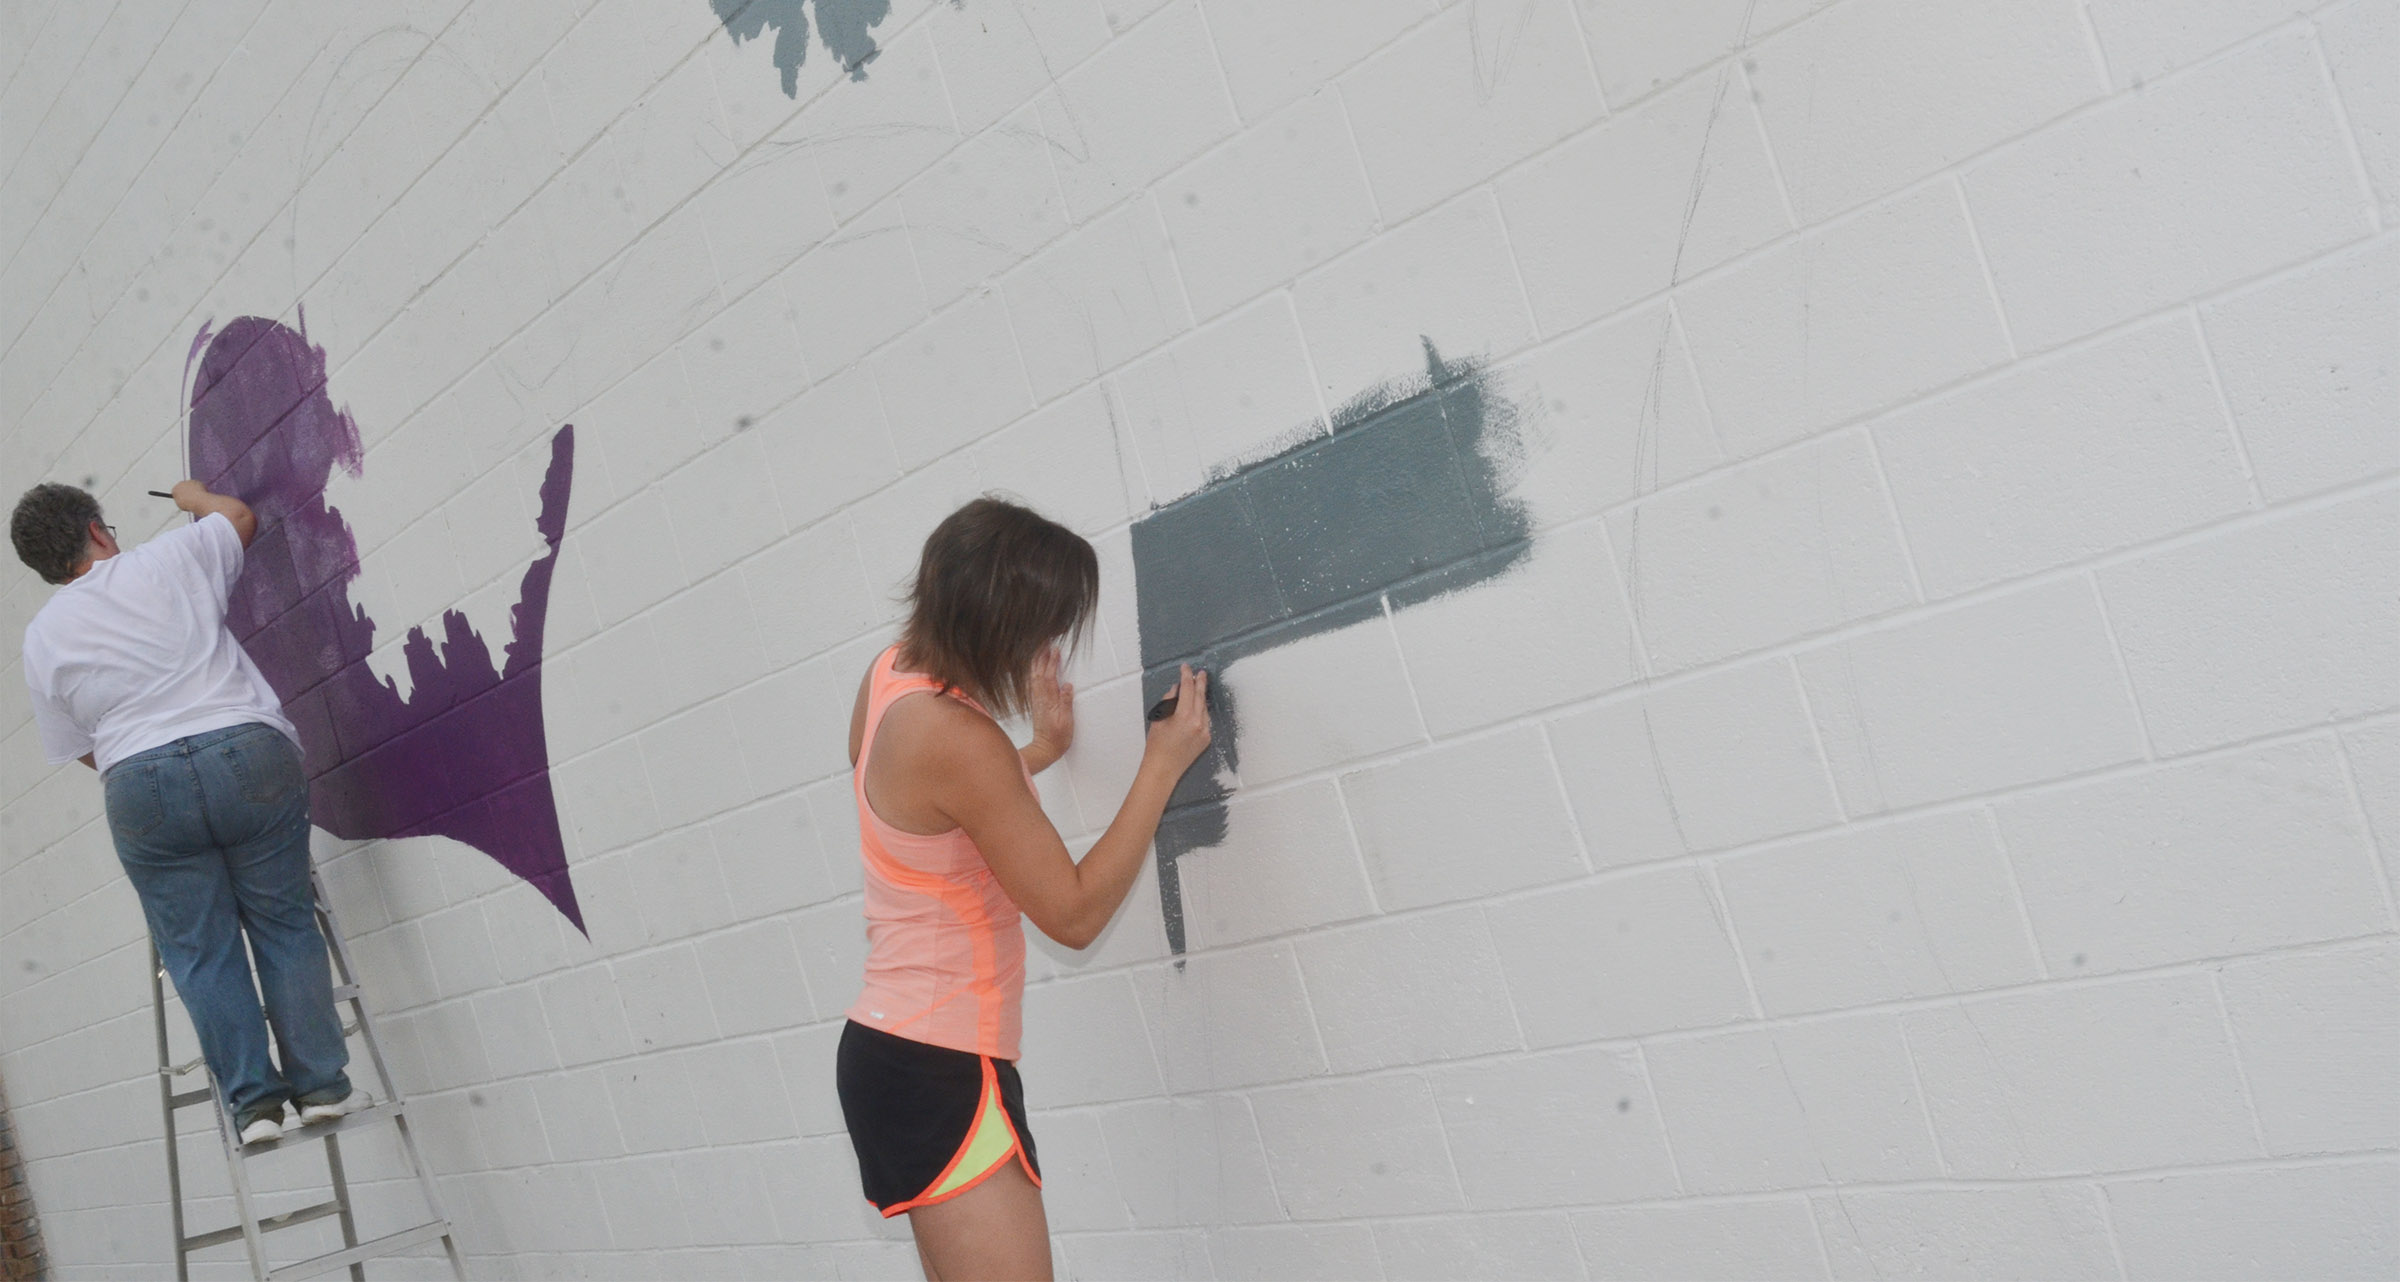 CHS art teacher Jo Ann Harris, at left, and Kyrsten Hill, who graduated in May, paint the mural.